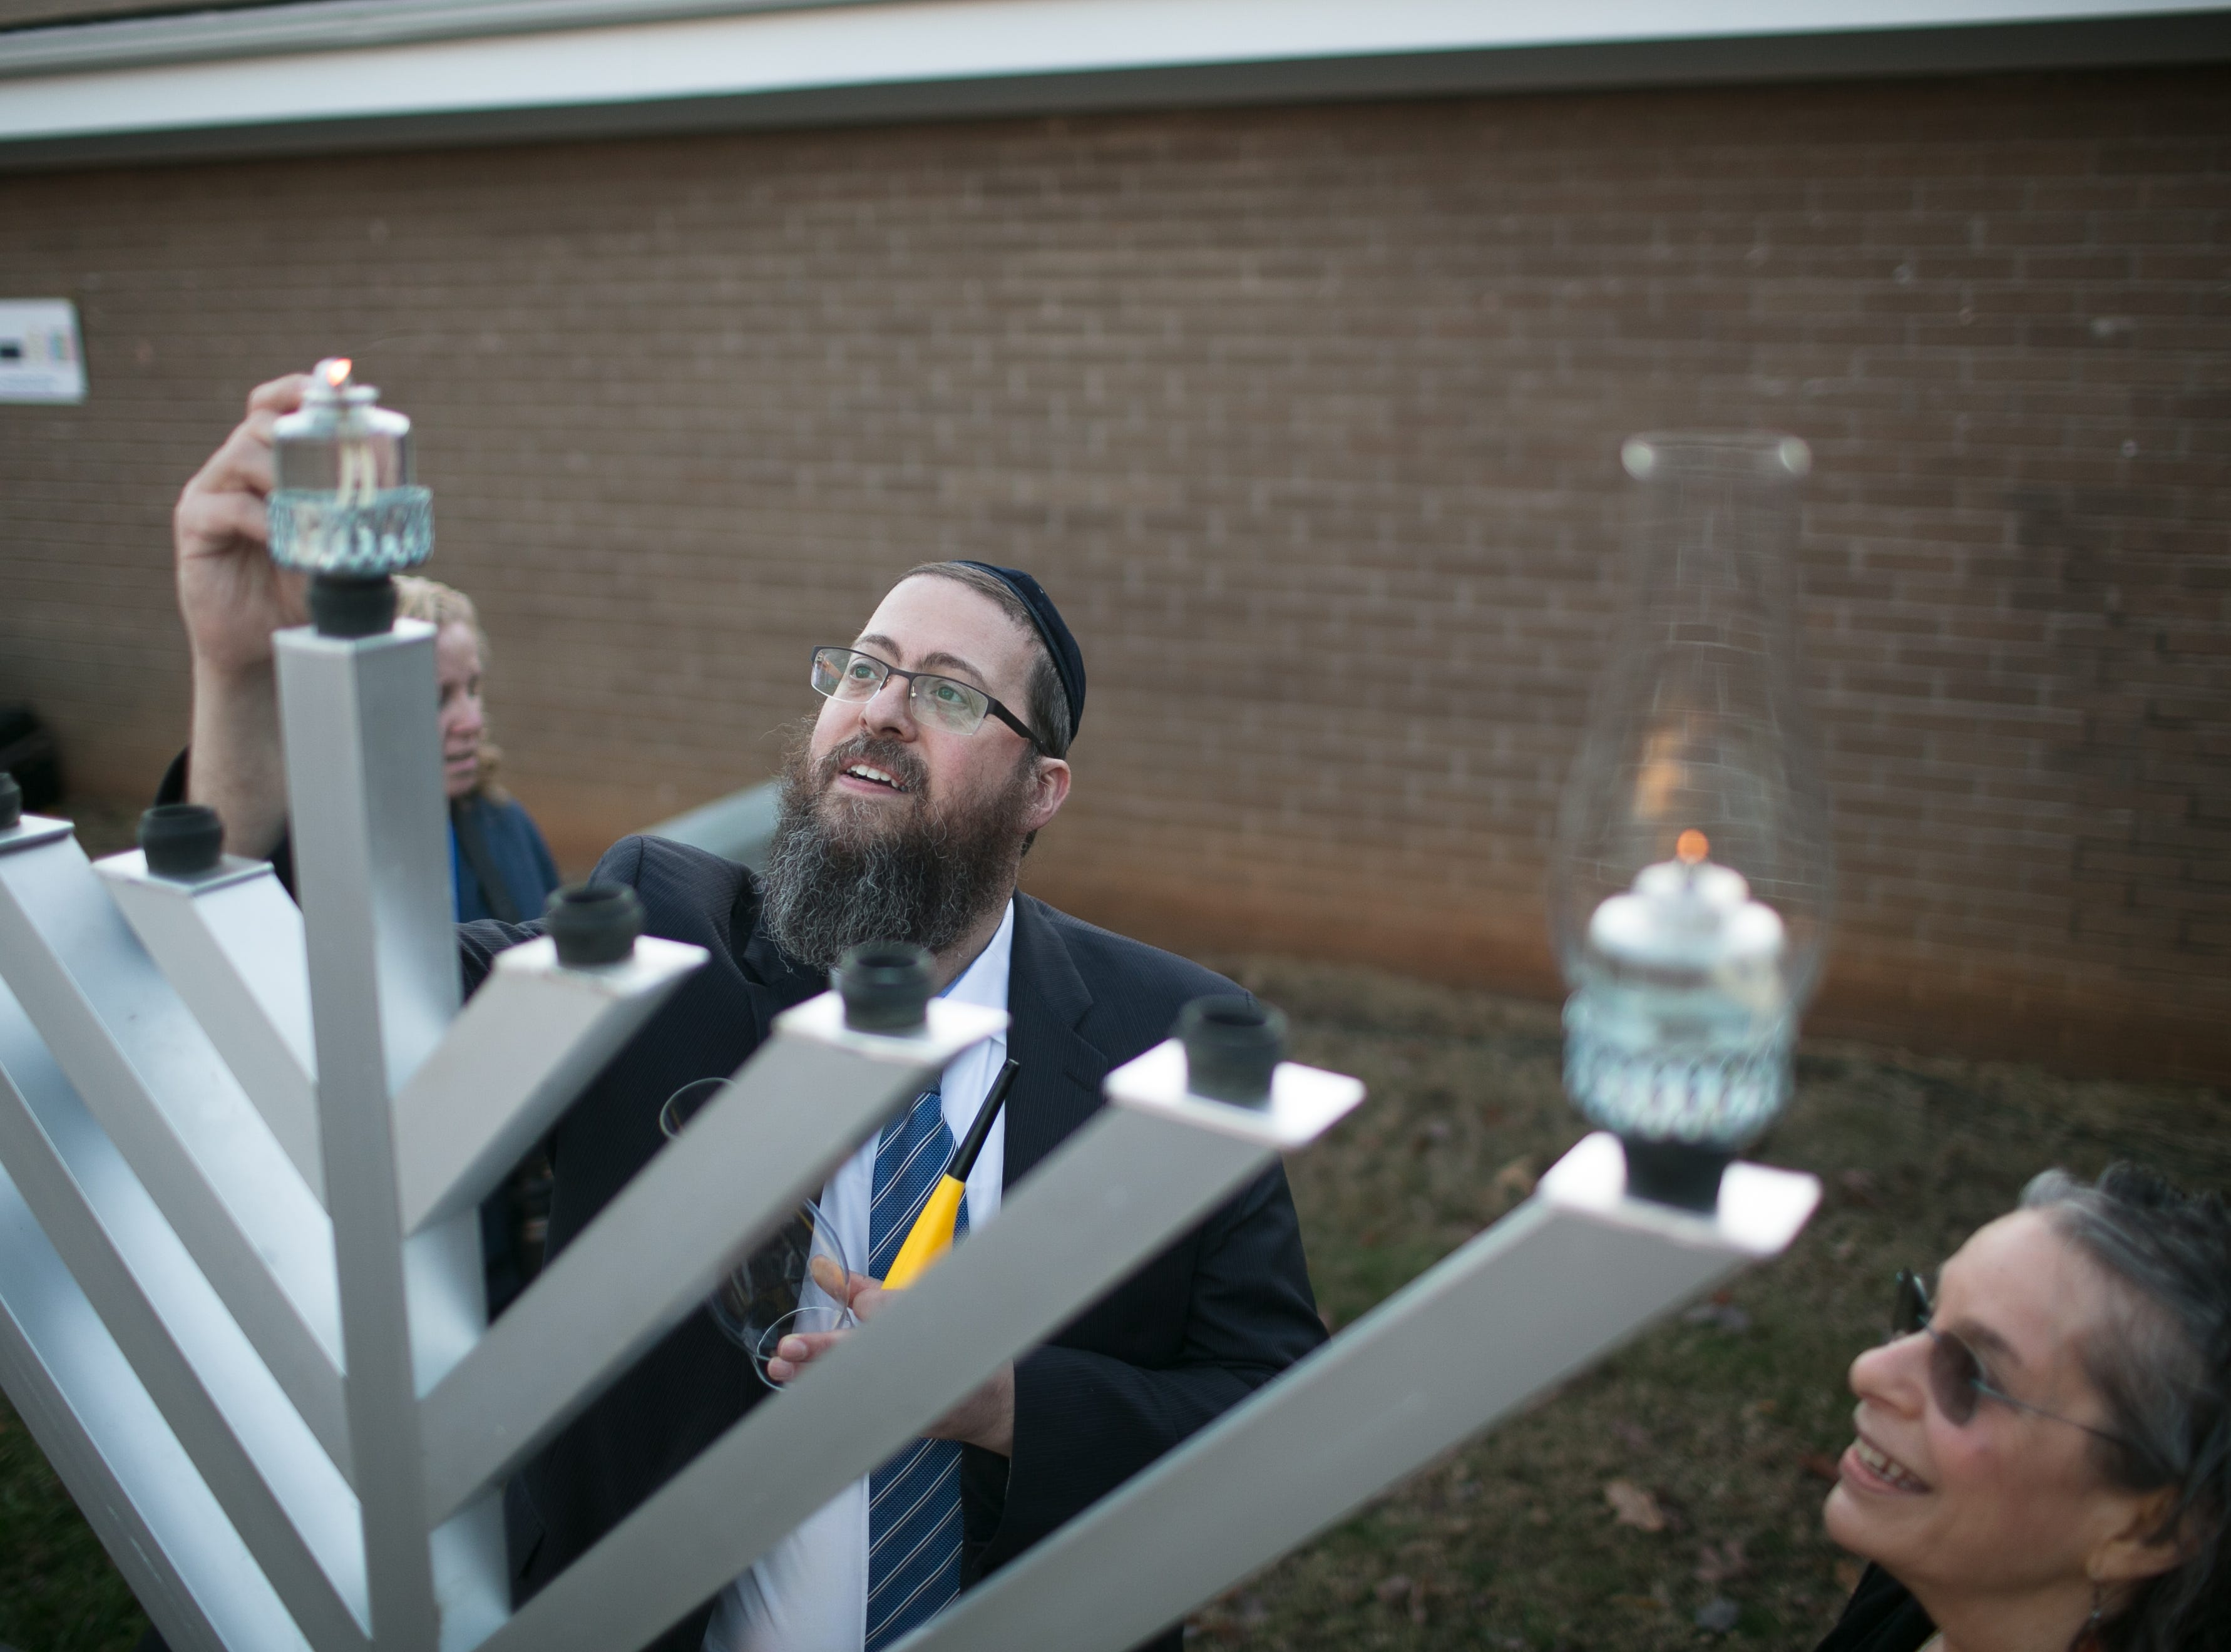 Chabad House Rabbi Shaya Susskind lights the 8-foot Giving Menorah alongside Alison Gilreath during Chanukah Live!, Asheville's community Hanukkah celebration. The event was held at the Chabad House on Dec. 2, 2018, in conjunction with the grand opening of their new facility on McDowell Street.